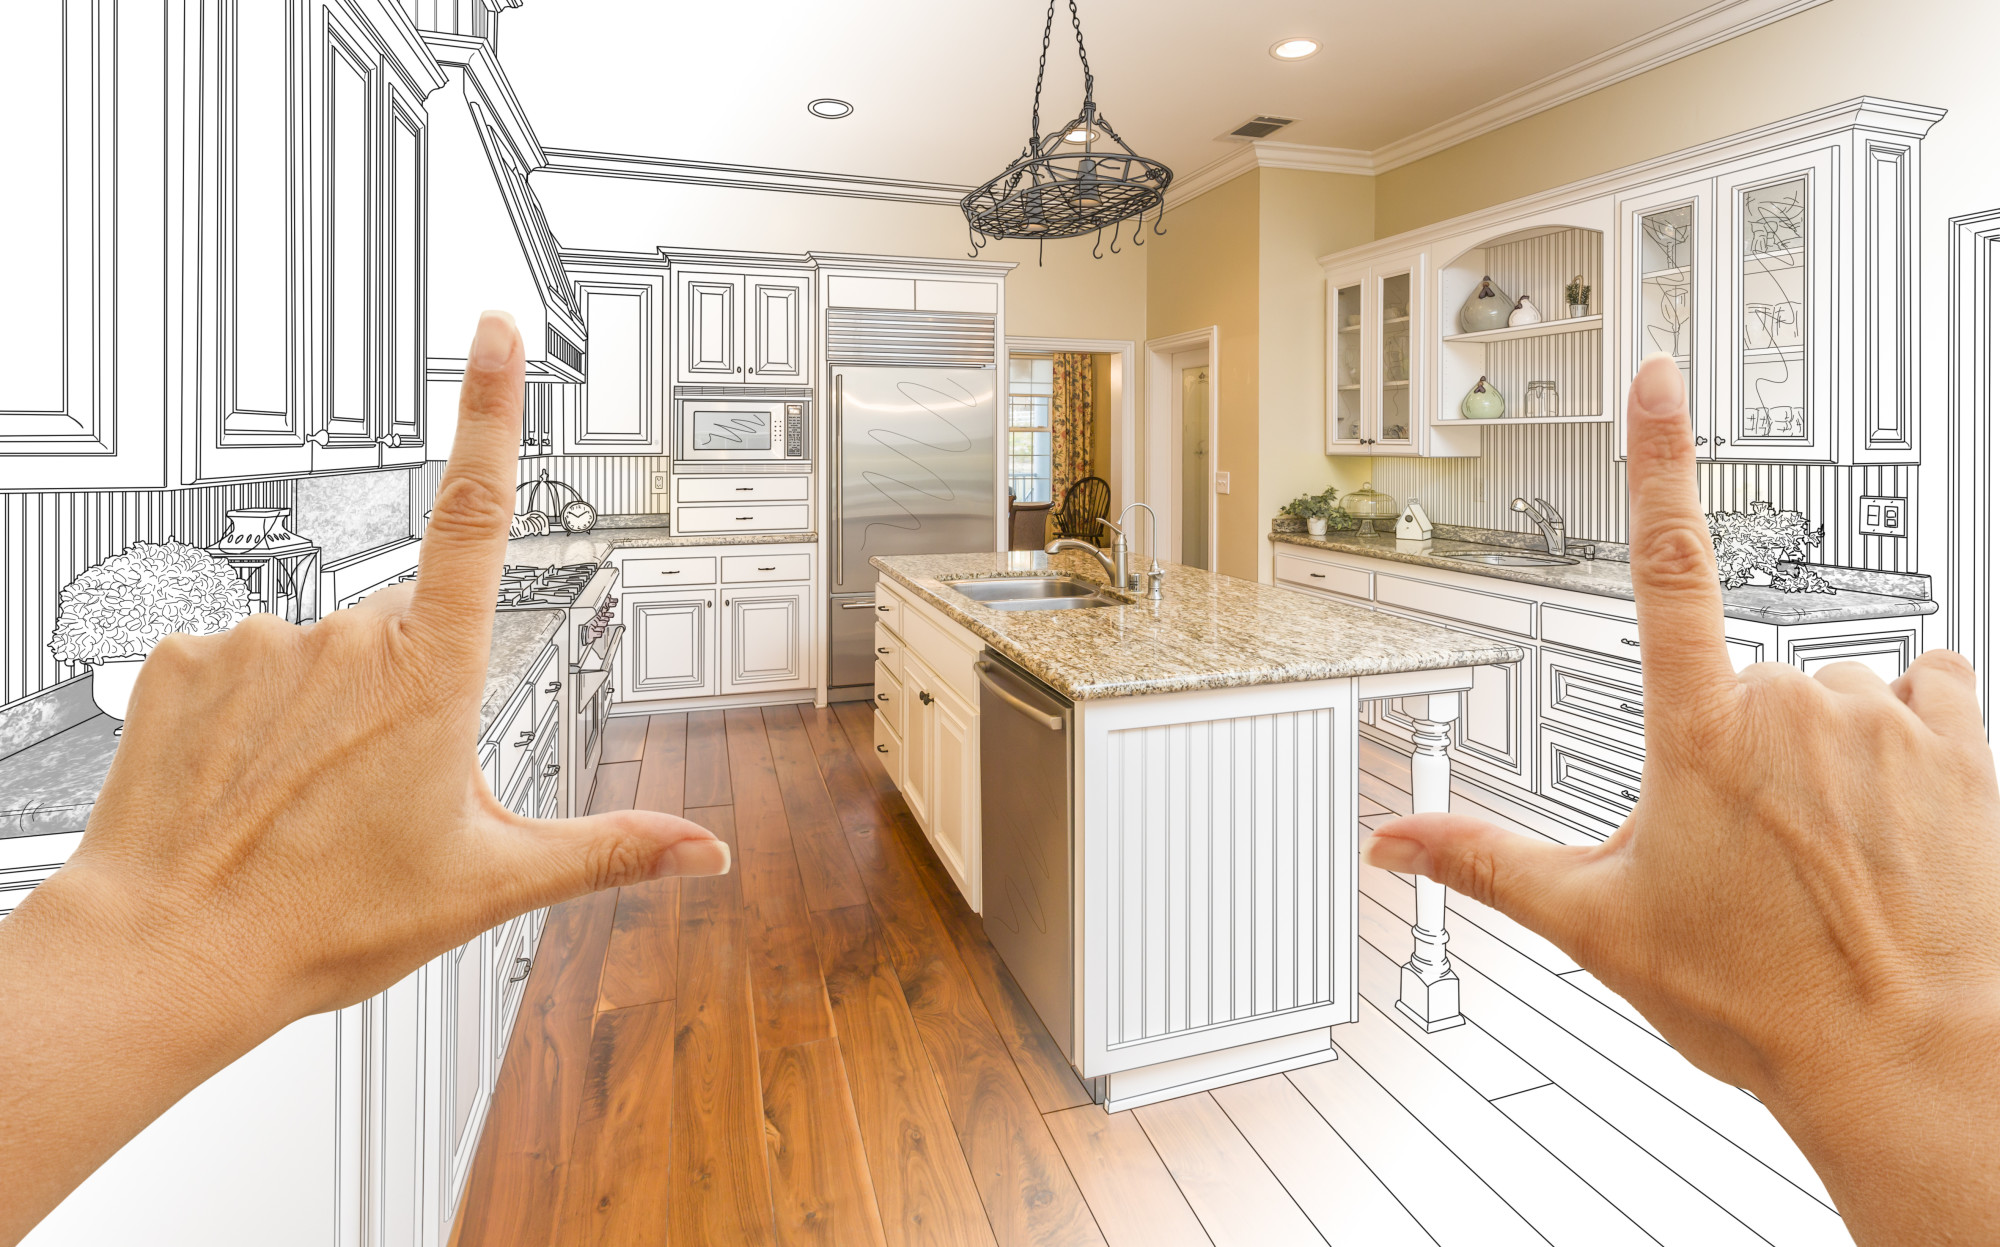 Remodeling a Small Kitchen: How to Make the Most of Your Space